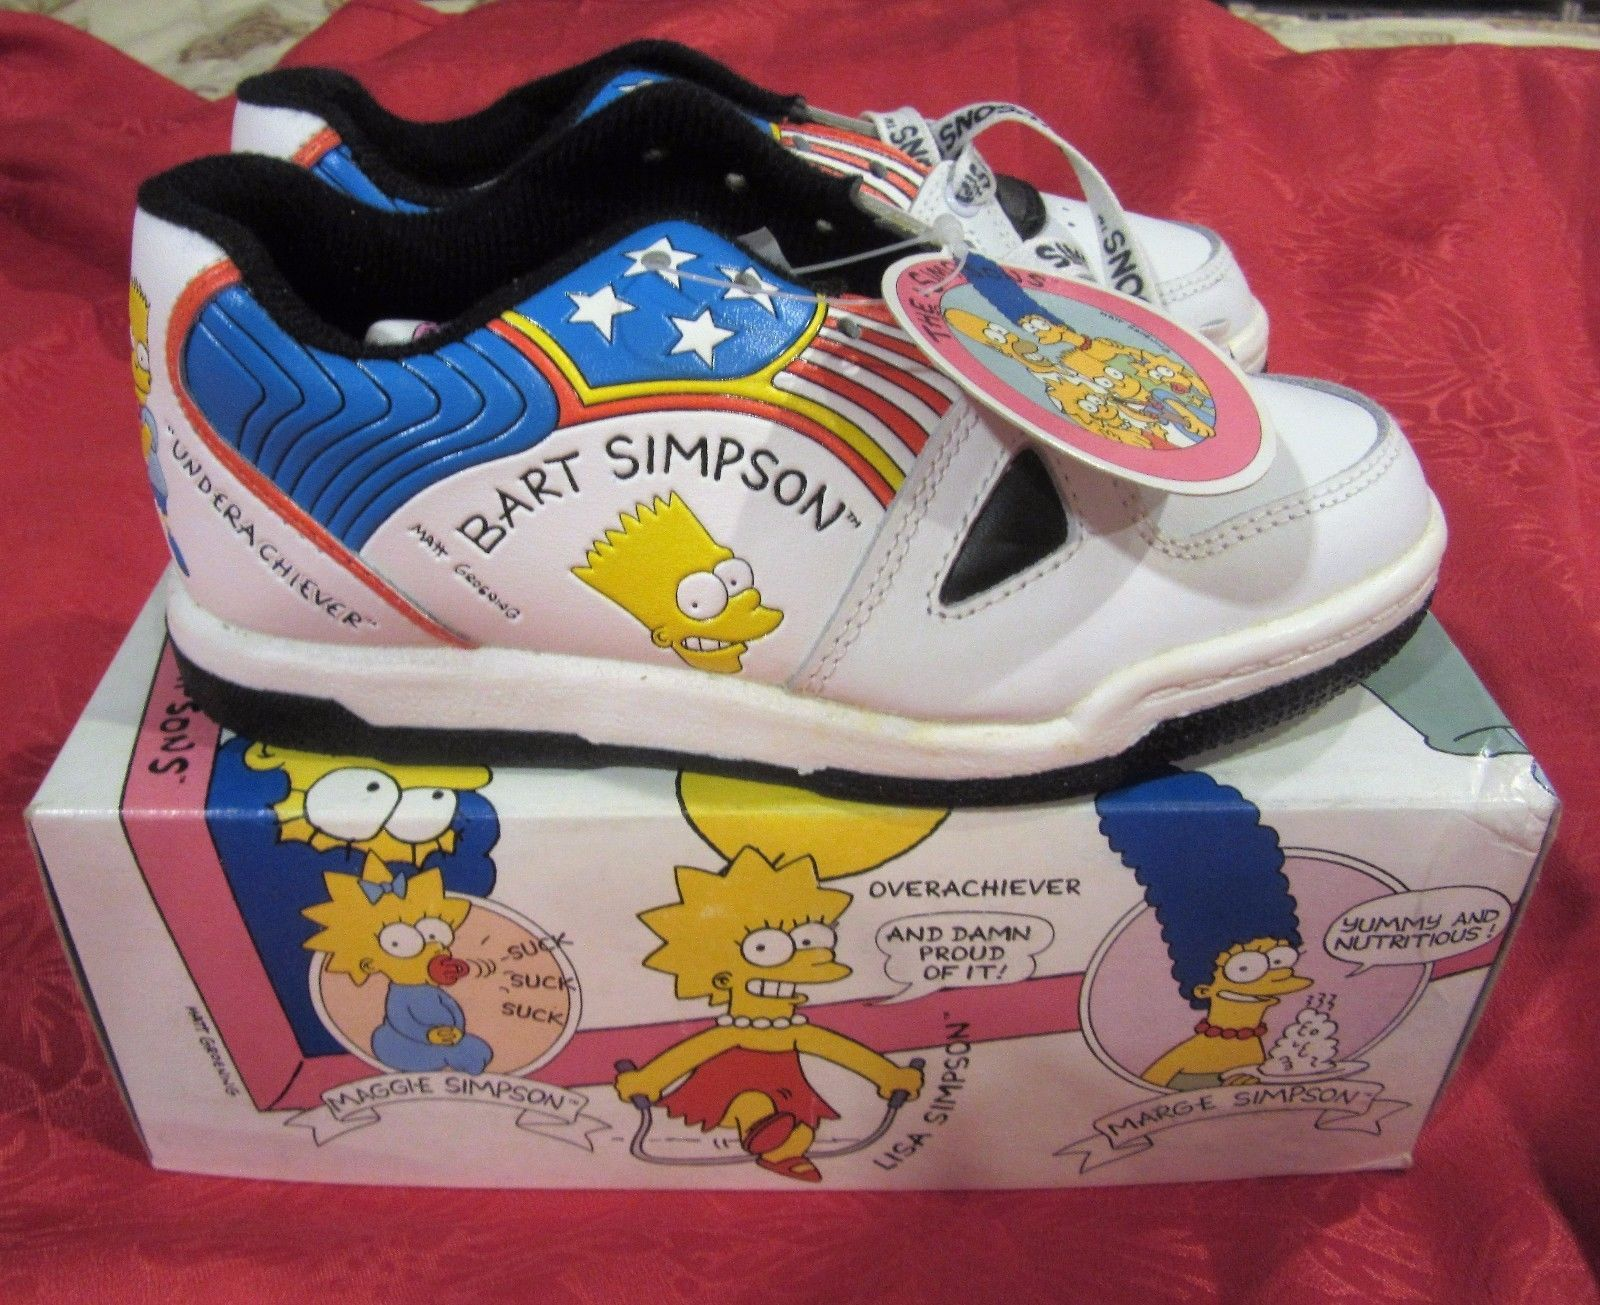 b3f4a55f4 The Simpsons Bart Simpson ULTRA RARE Vintage Sneakers Shoes NIB 1991 NOS  FOR SALE •